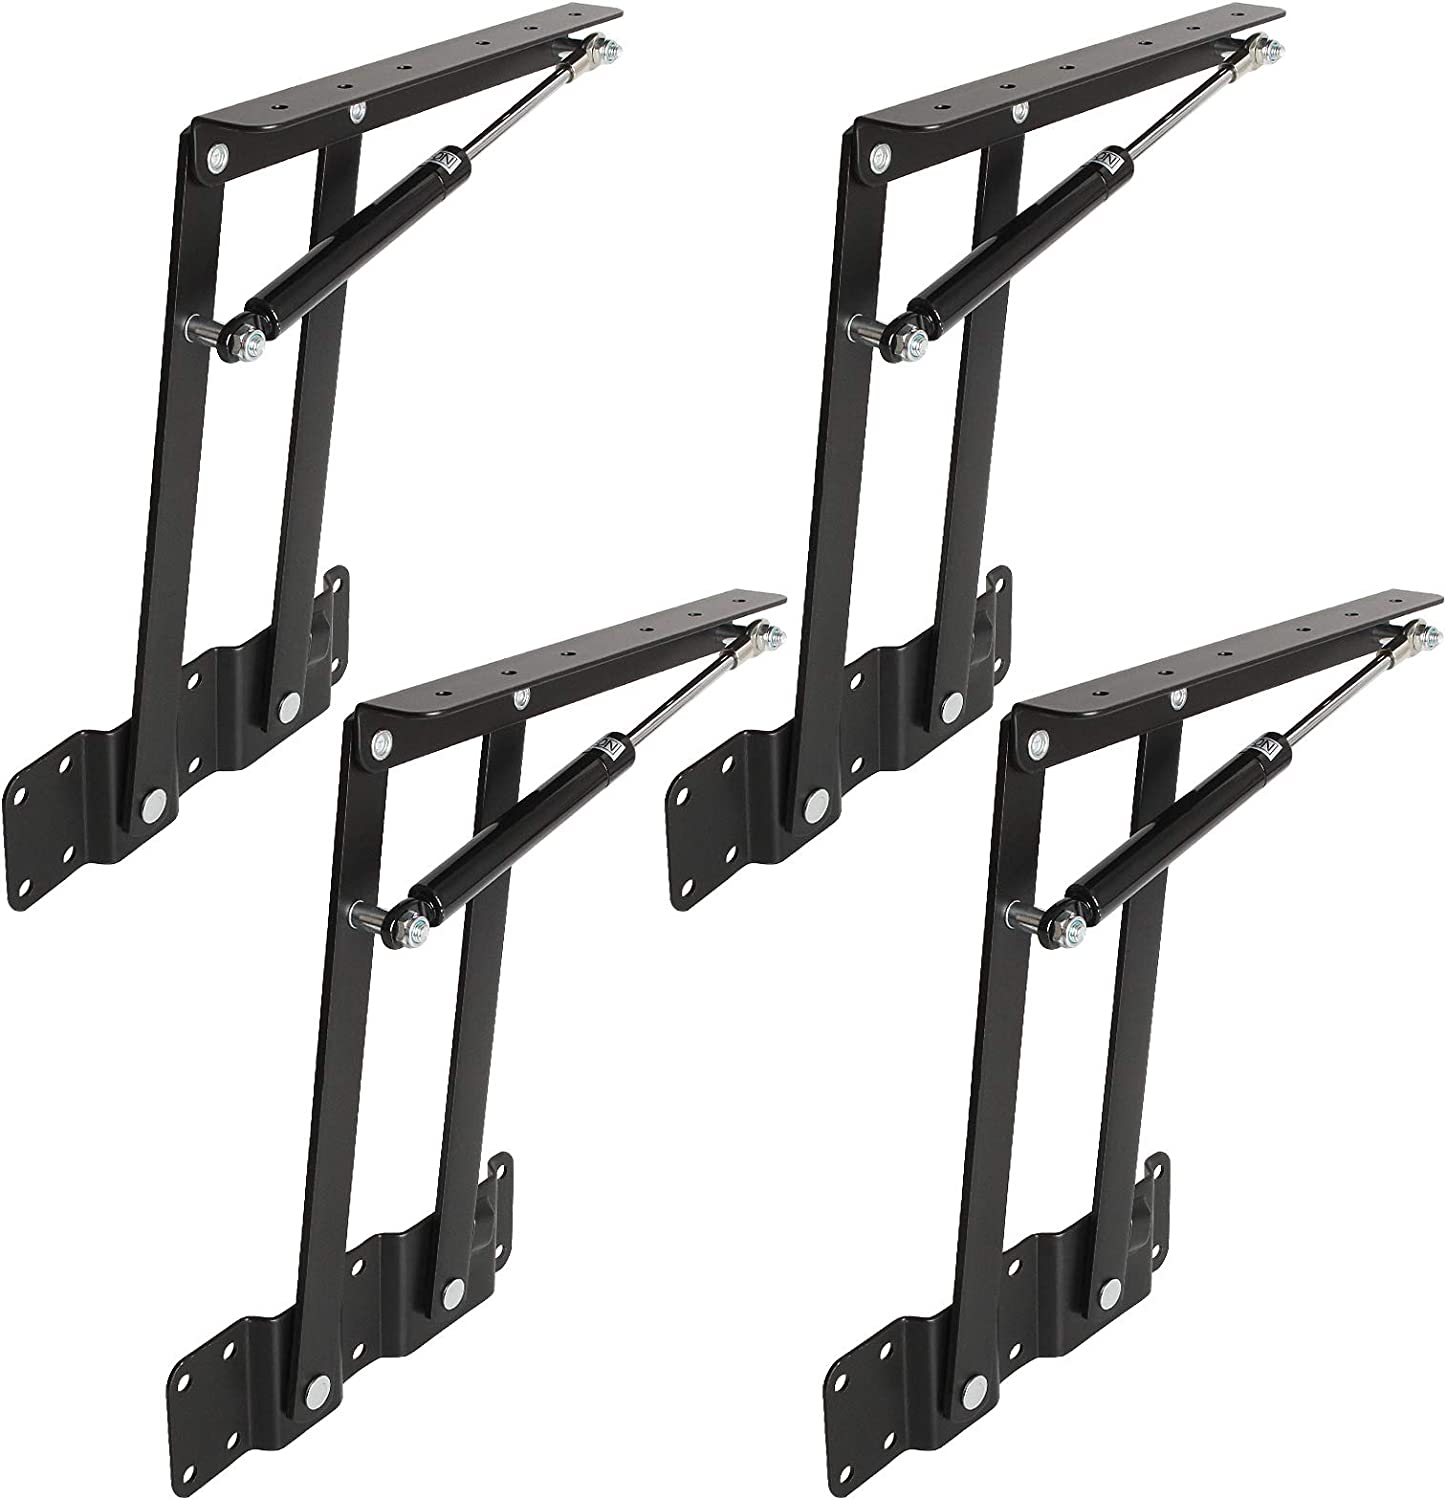 4 Pack Lift Up Hydraulic Hinge Top Lifting Frame,Lift Up Top Coffee Table Lift Mechanism Hardware Fitting Convertible Furniture Hinges Spring Stand Rack Bracket,Black Spring Stand Furniture Hinges